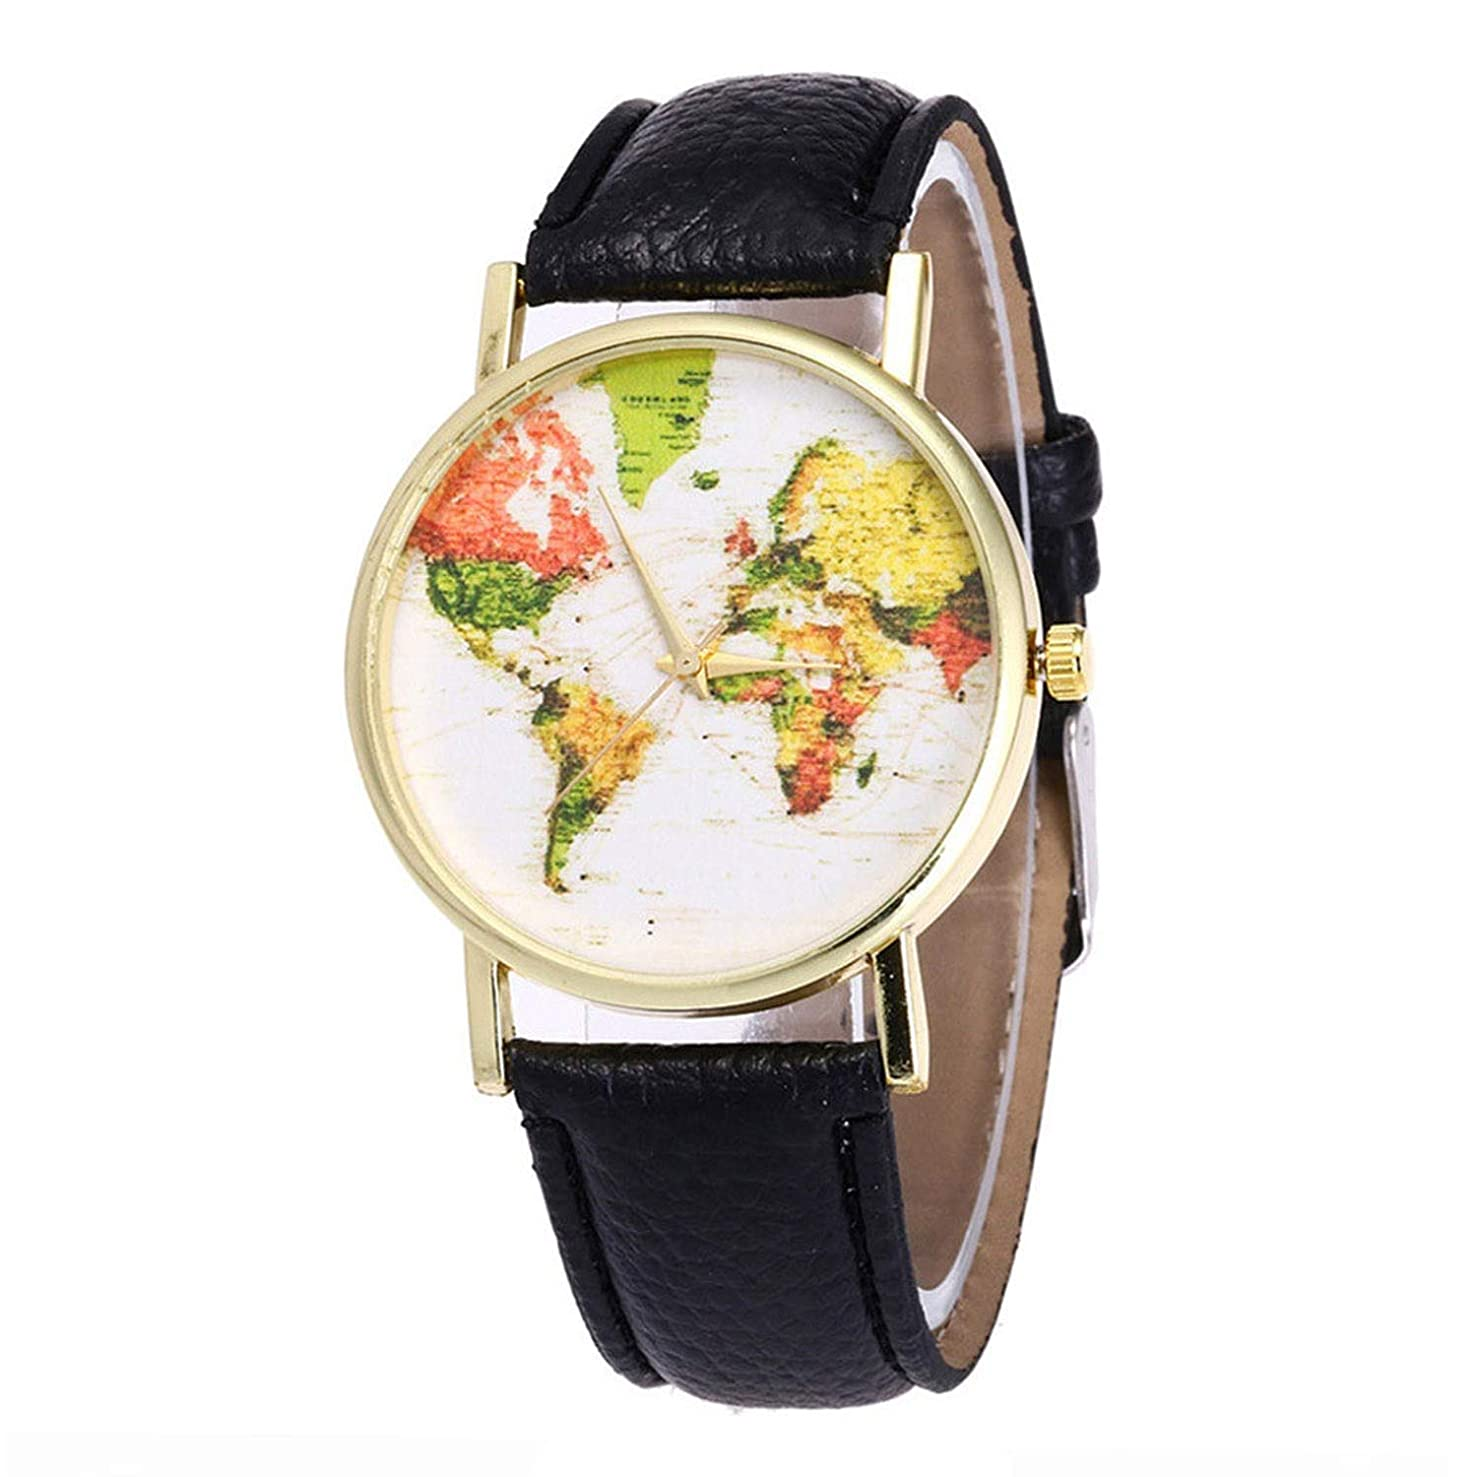 Shi Tou_2019 New Daily Casual Sports Ladies and Men's Map Leather WatchesWatch Candy Color Male and Female Strap Wrist Watch Perfect After-Sales Watch is Uniquely Adjustable